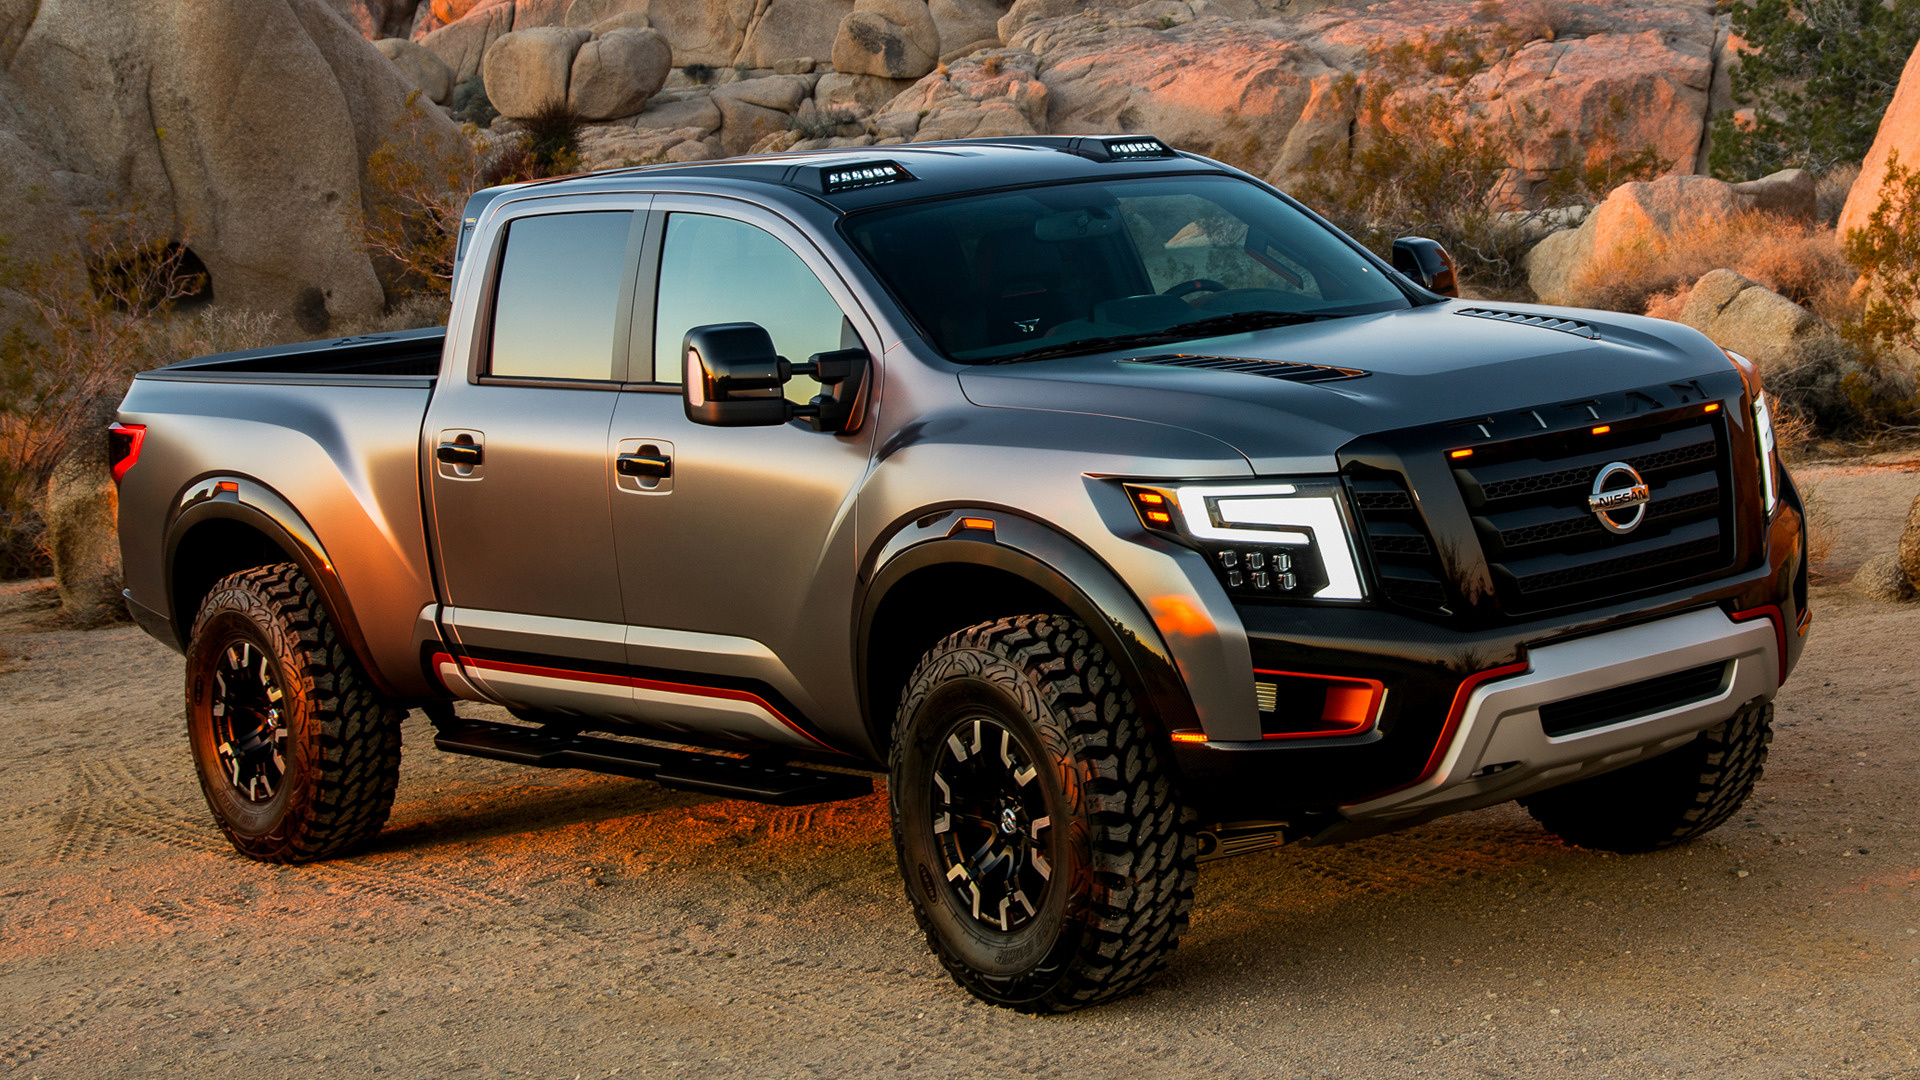 2016 Ford Trucks >> Nissan Titan Warrior Concept (2016) Wallpapers and HD ...